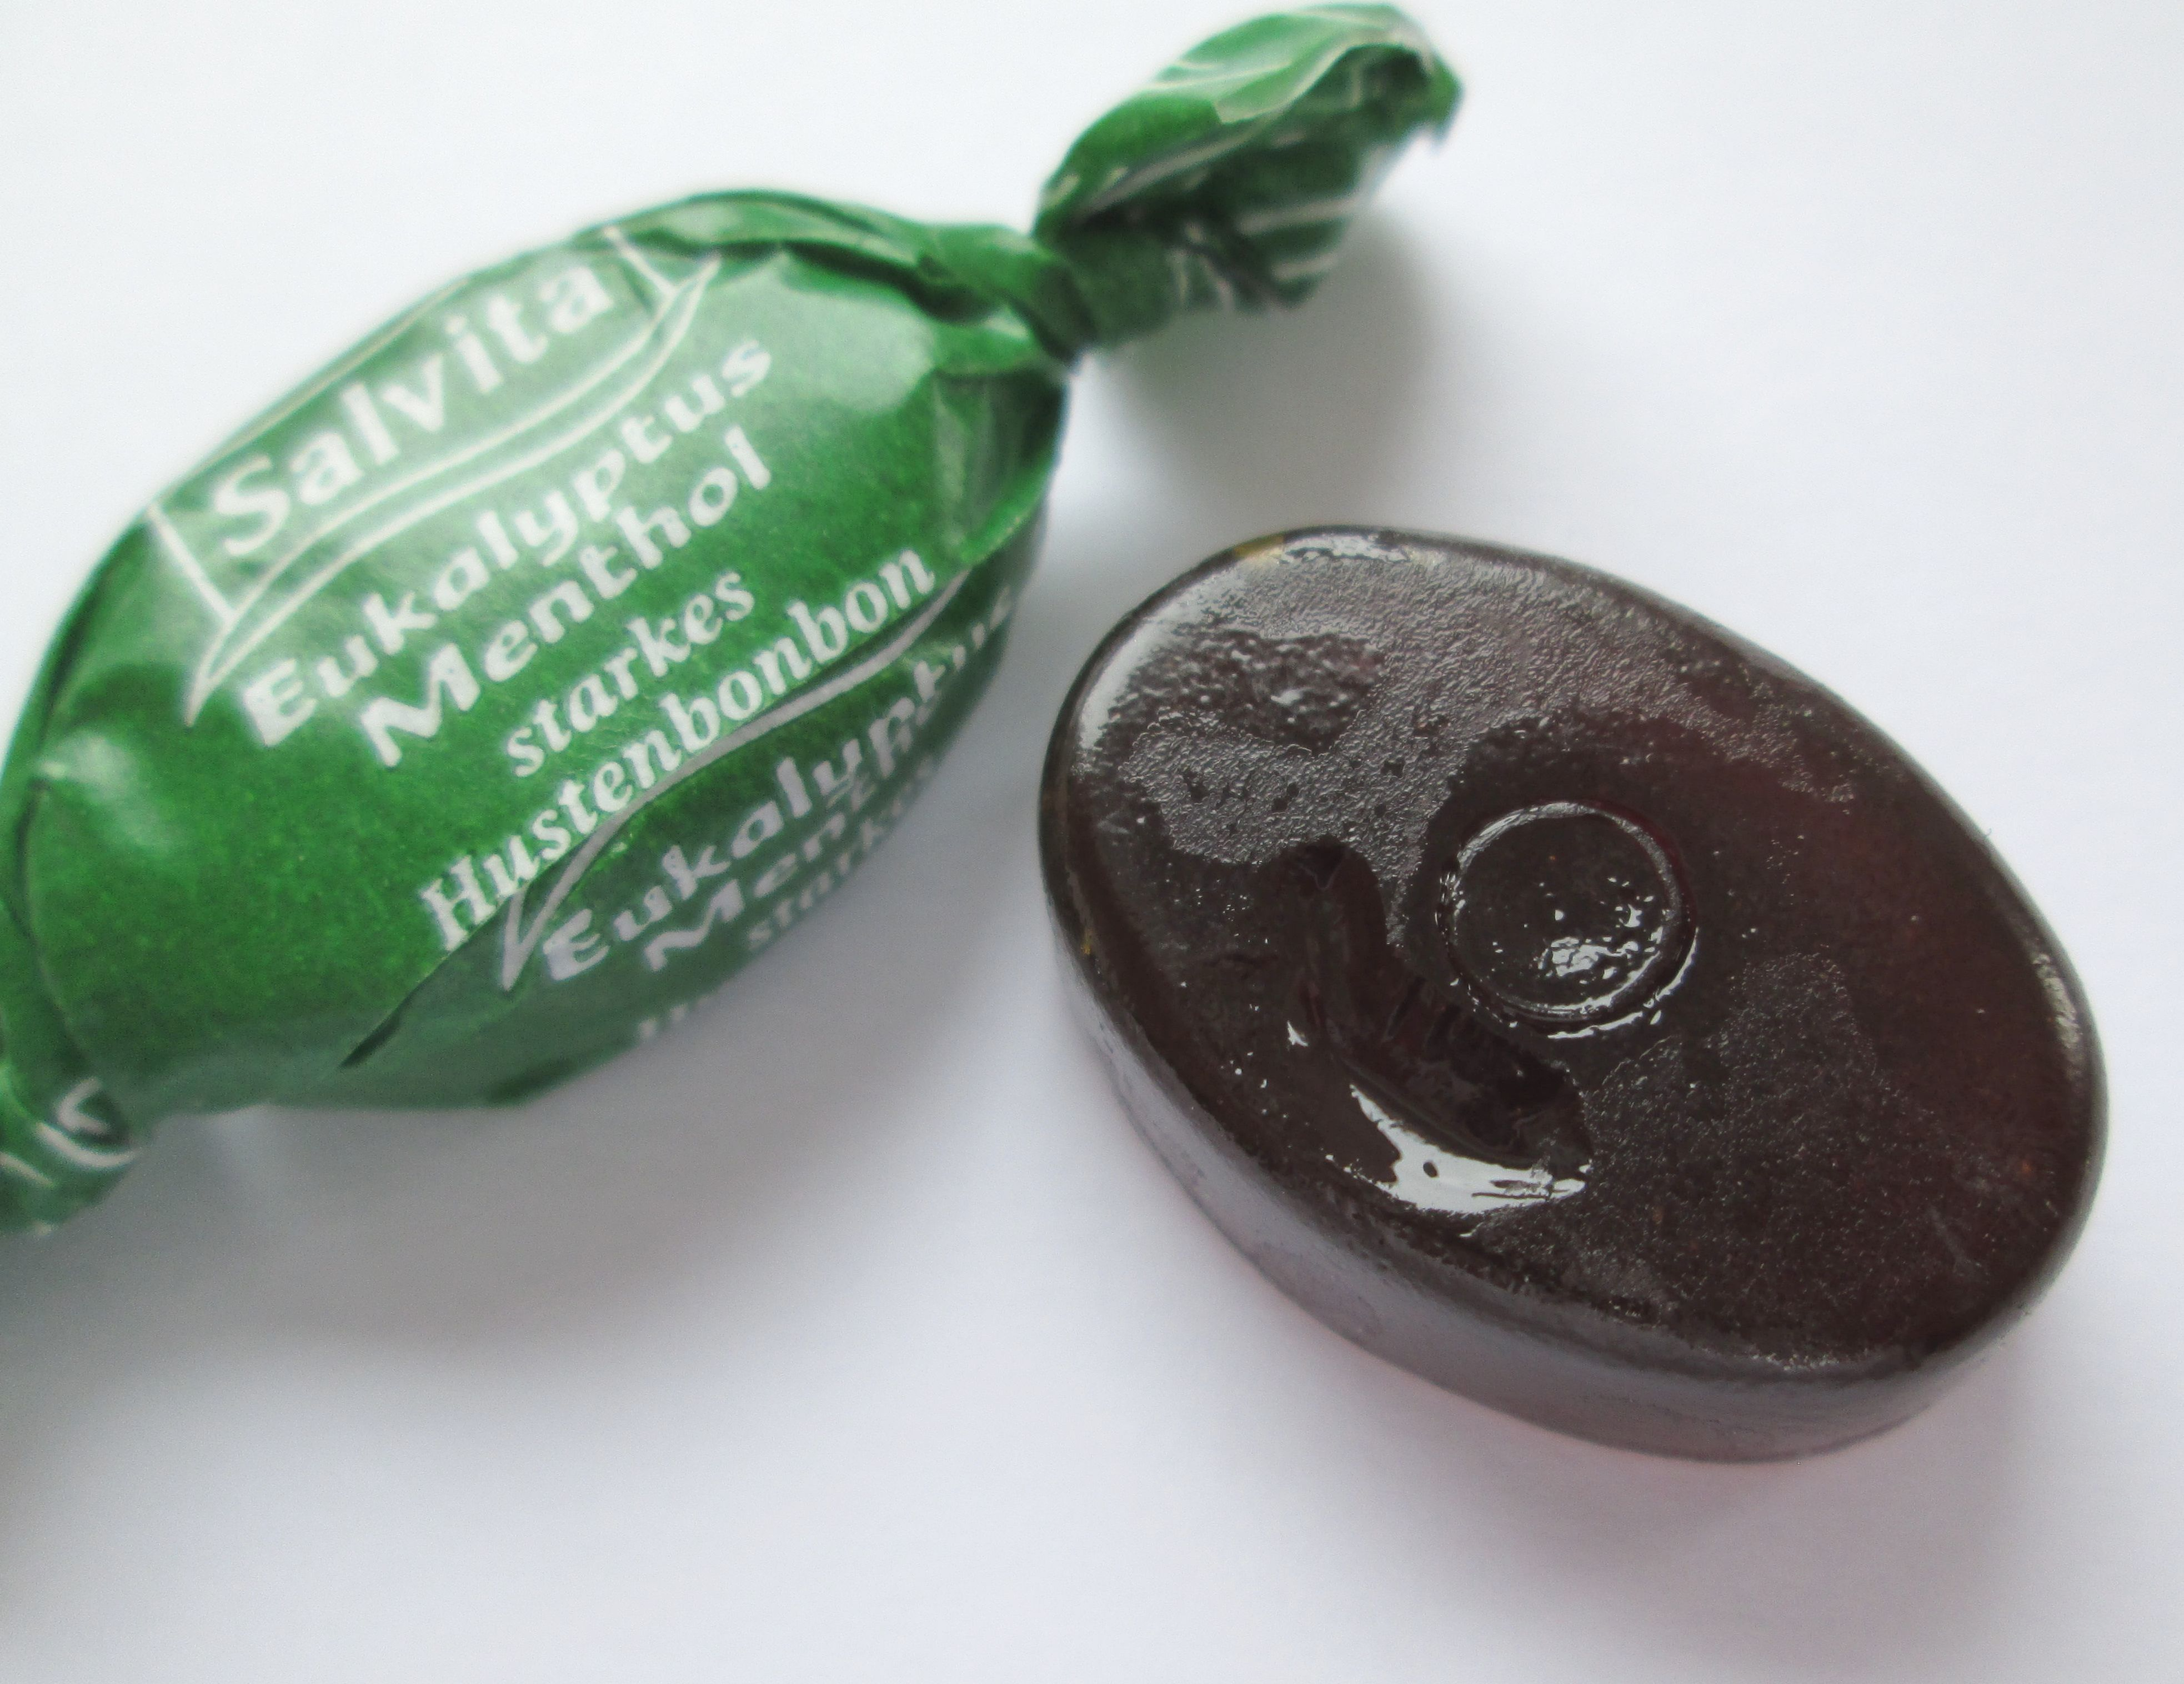 Cough drops - The complete information and online sale with